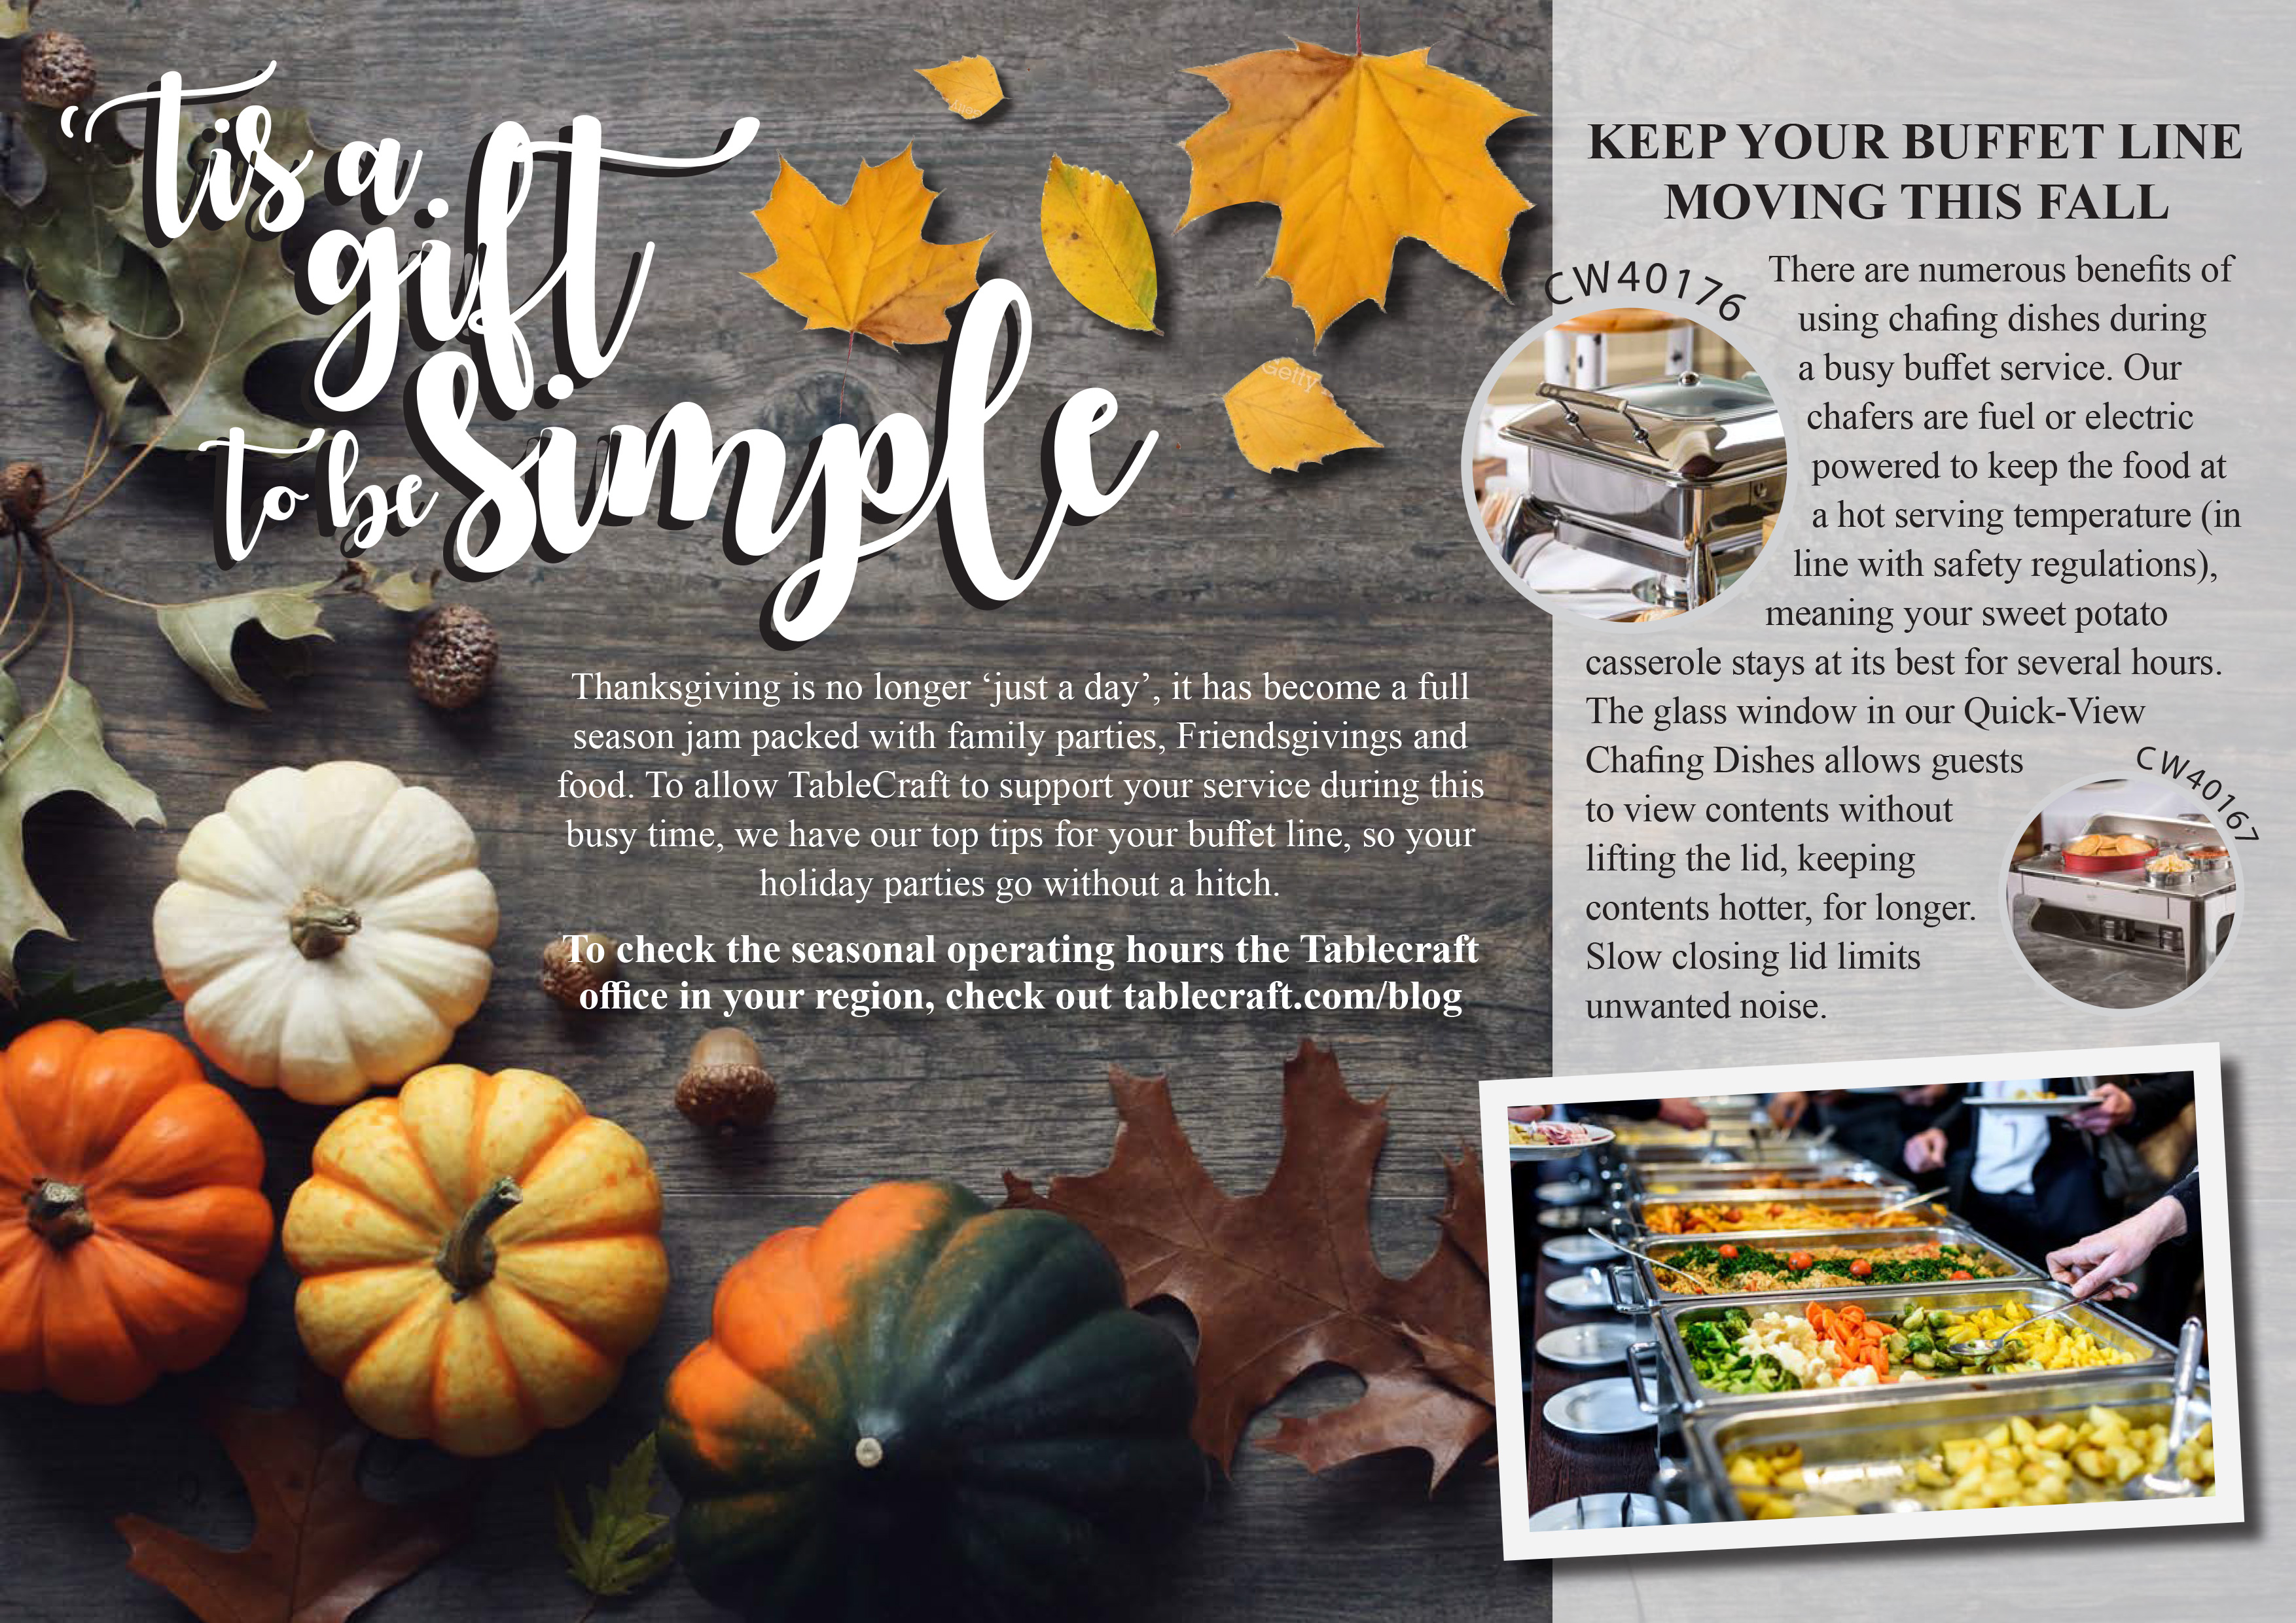 tis a gift to be simple keep your buffet line moving this fall